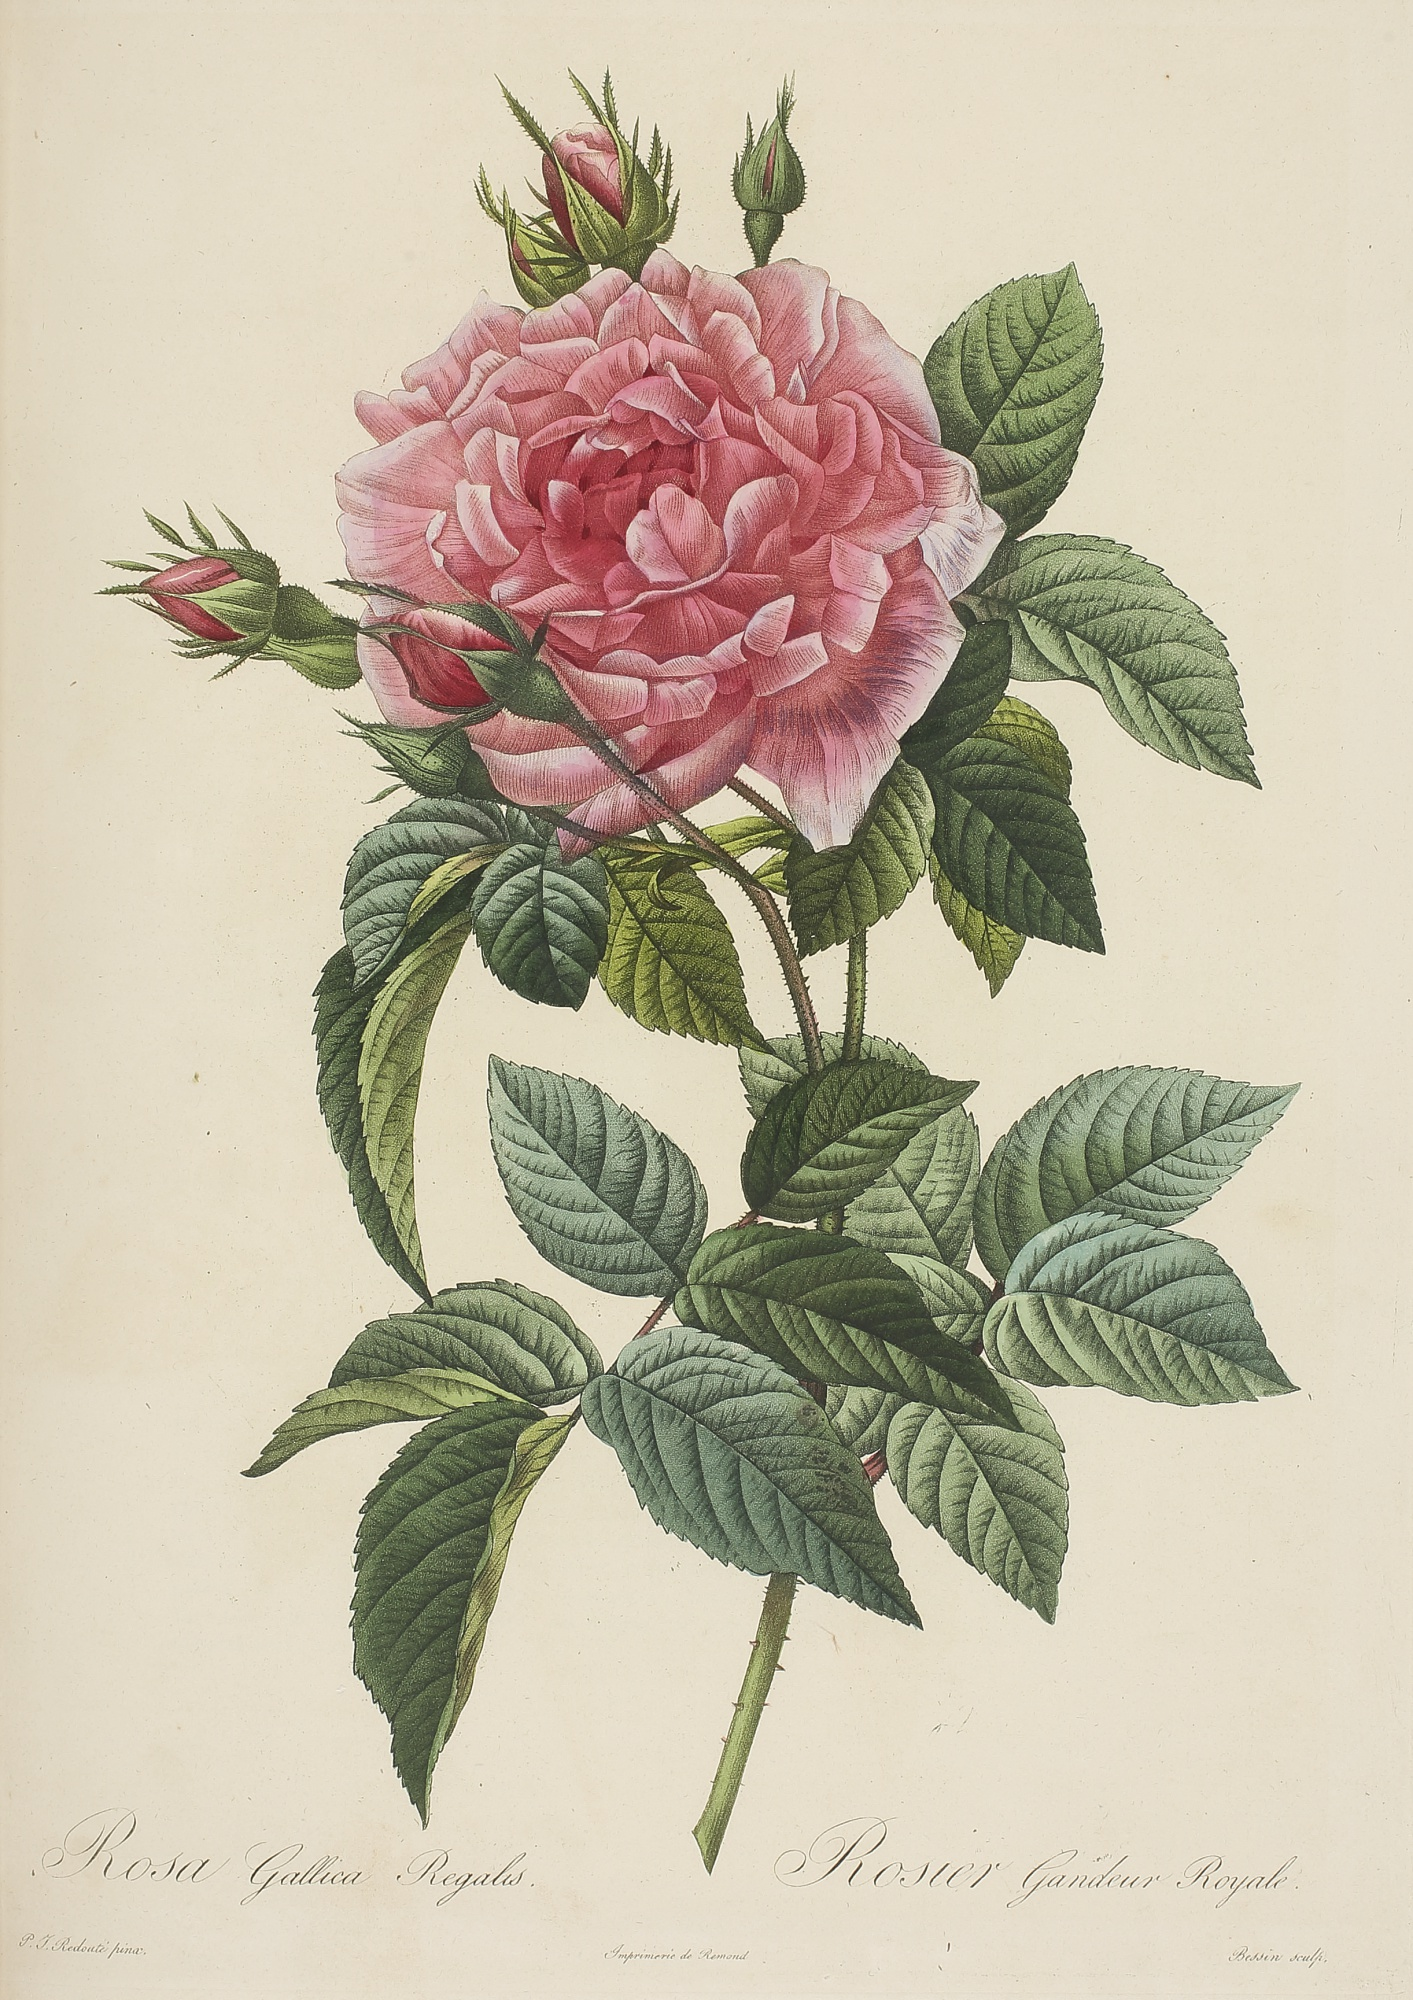 Les Roses, Three Botanical Illustrations by Pierre Joseph Redouté, 1817 - 1824, 1